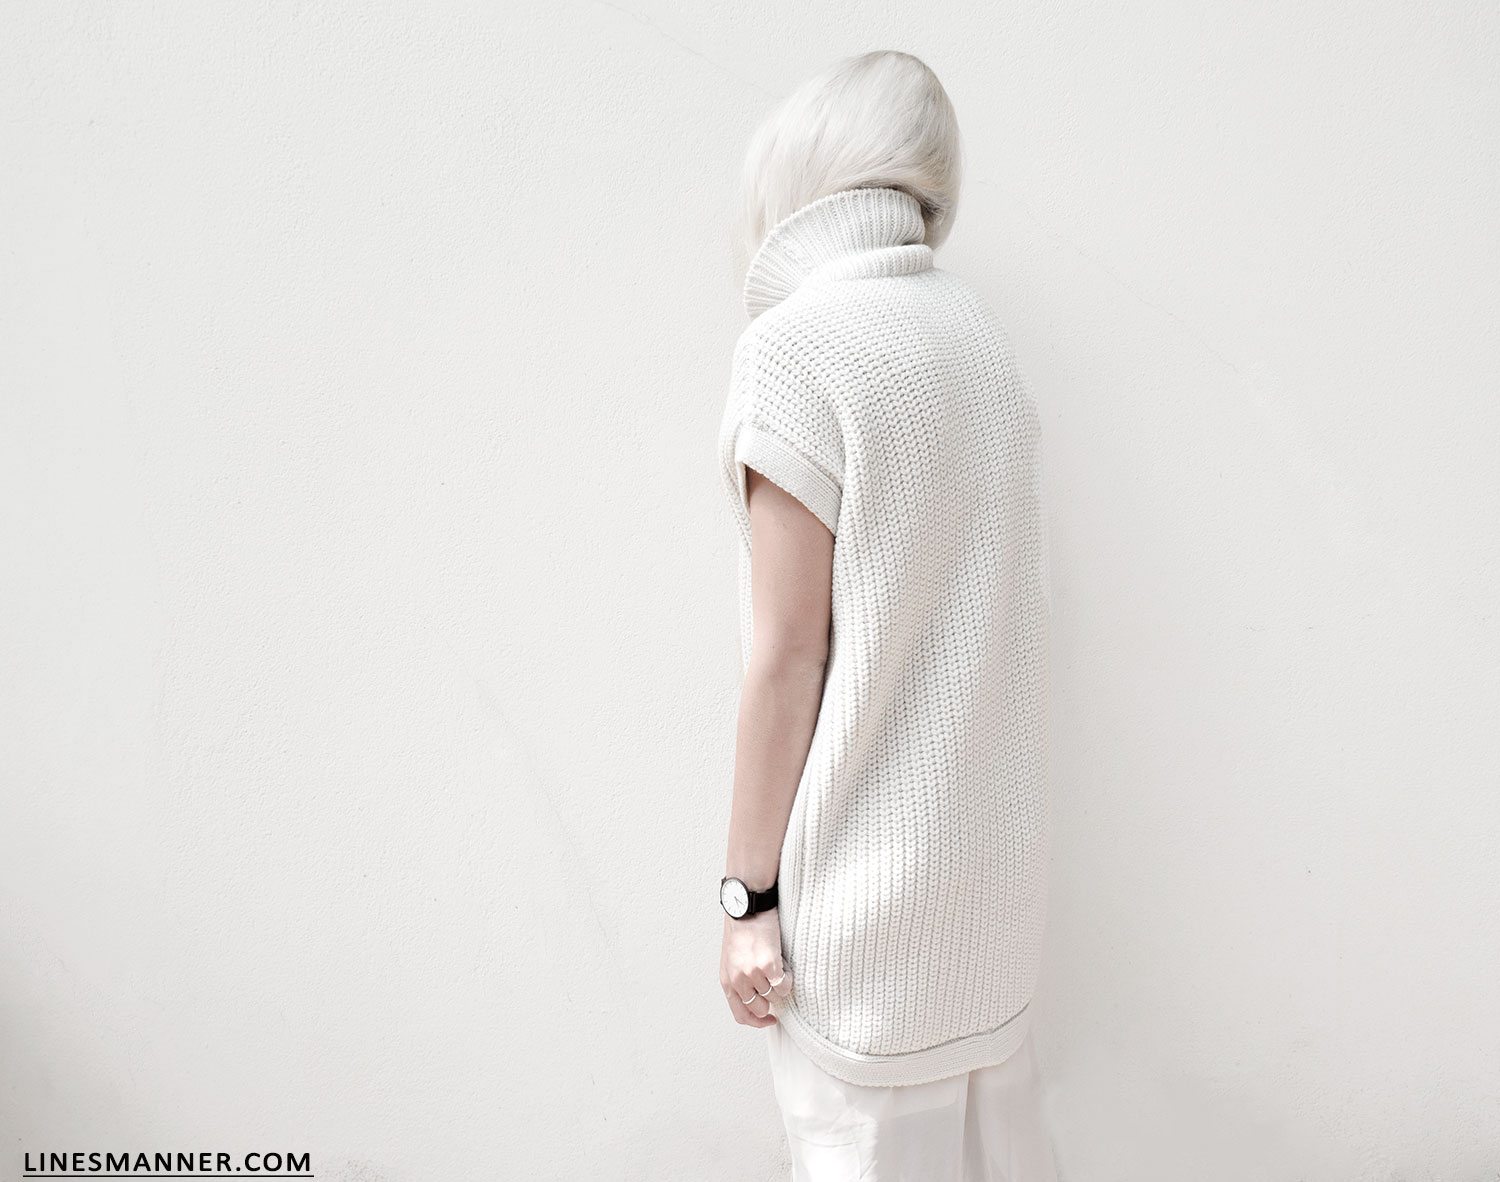 Lines-Manner-Sleeveless-Clean-Minimal-Effortless-Neutrals-Whiteout-Details-Essential-Staple-Statement_Piece-Knit-Sweater-Turtleneck-Trans_Seasonal-Larsson_And_Jennings-Warm-4